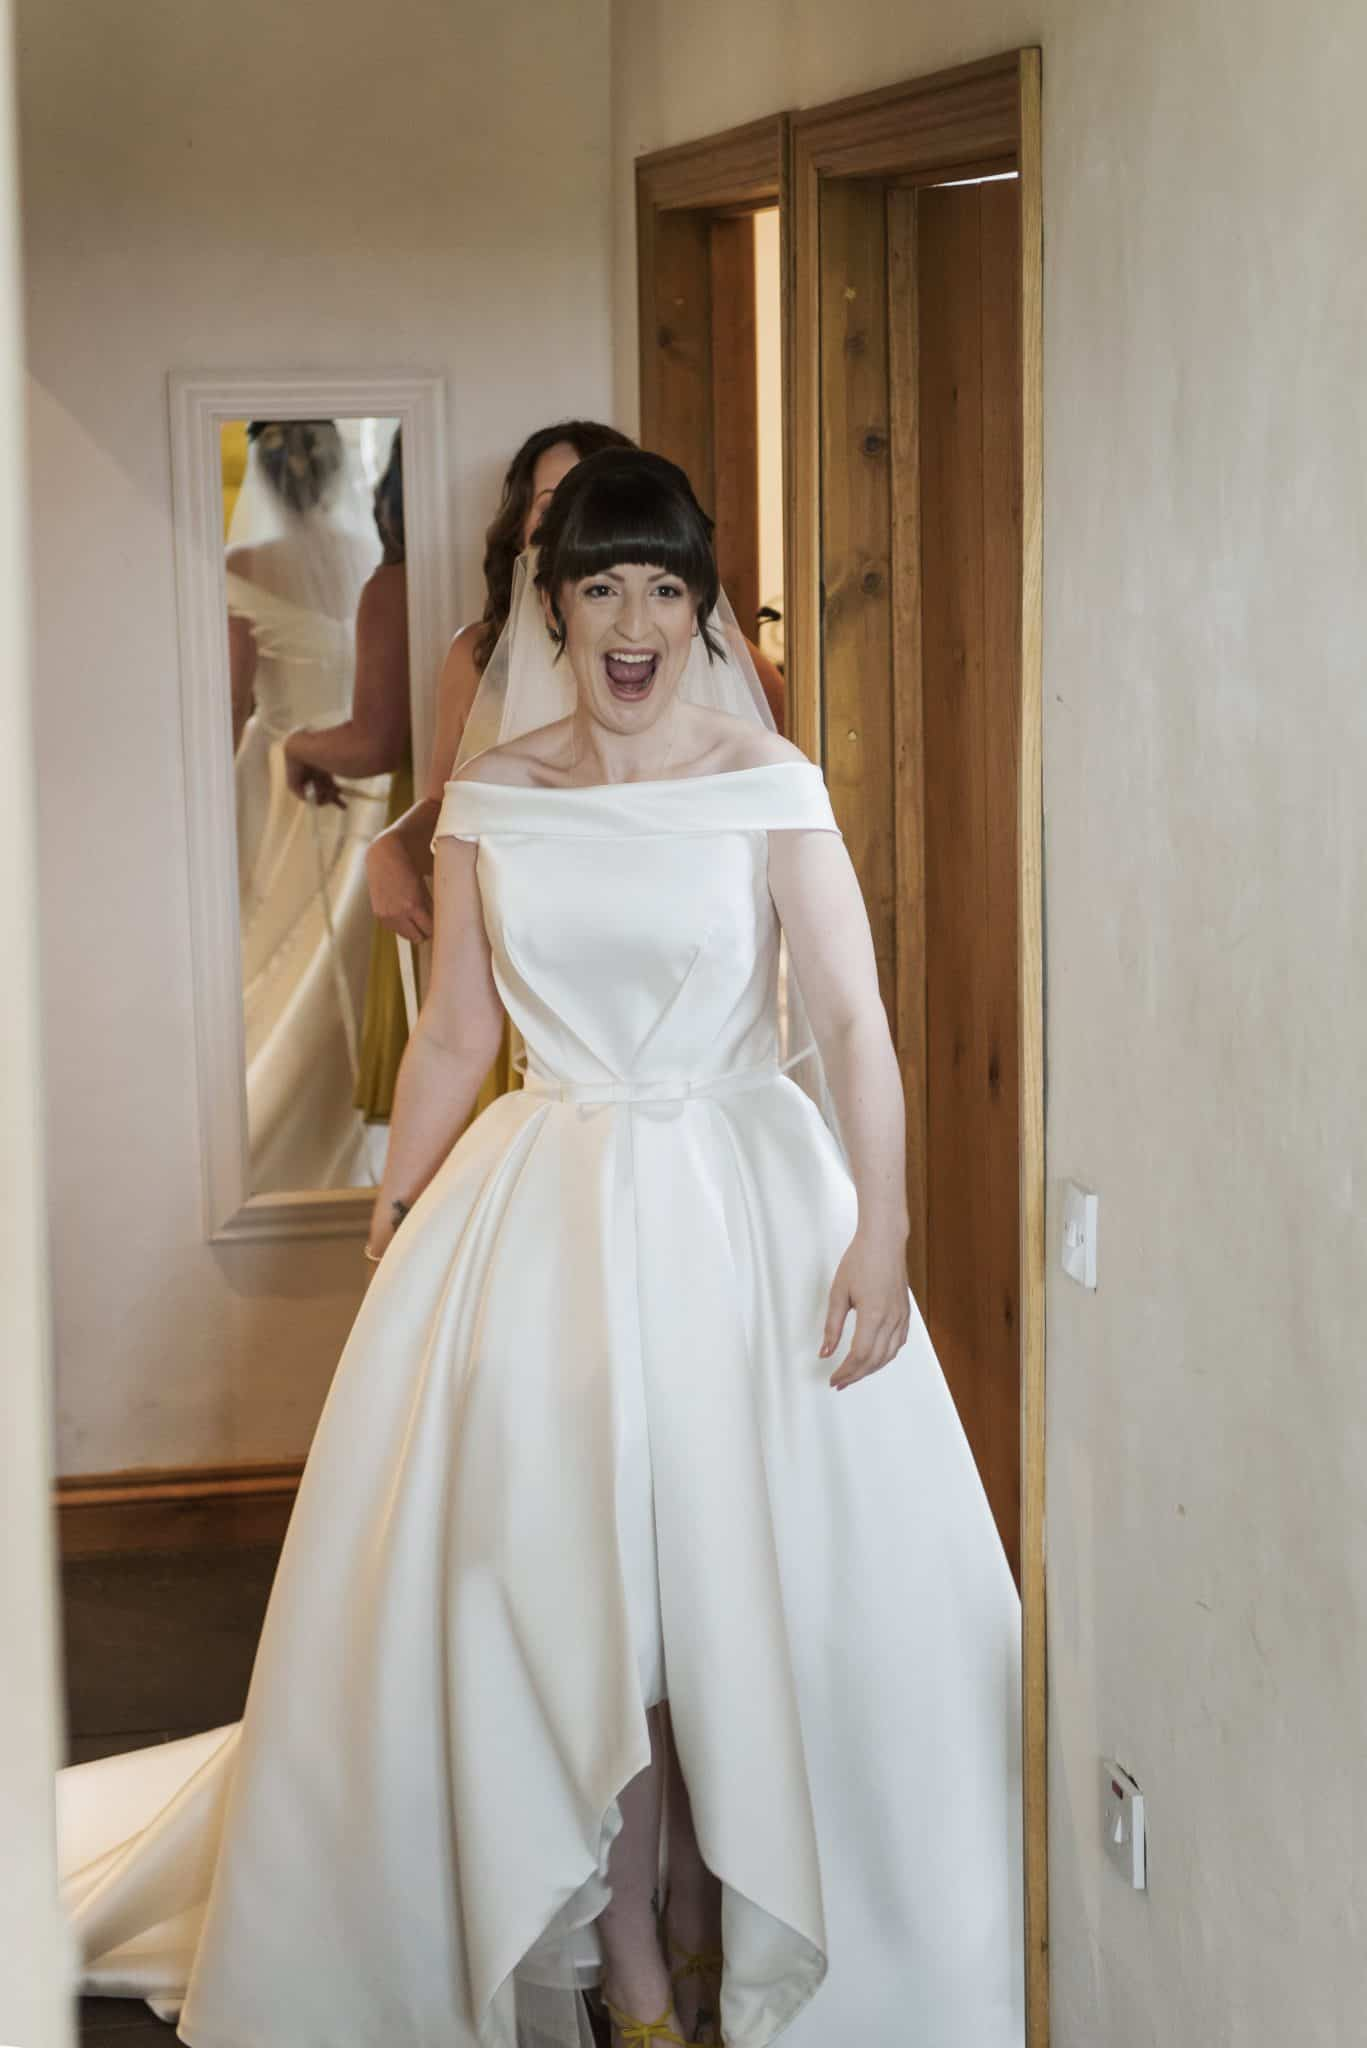 Bride smiling as she walks into room